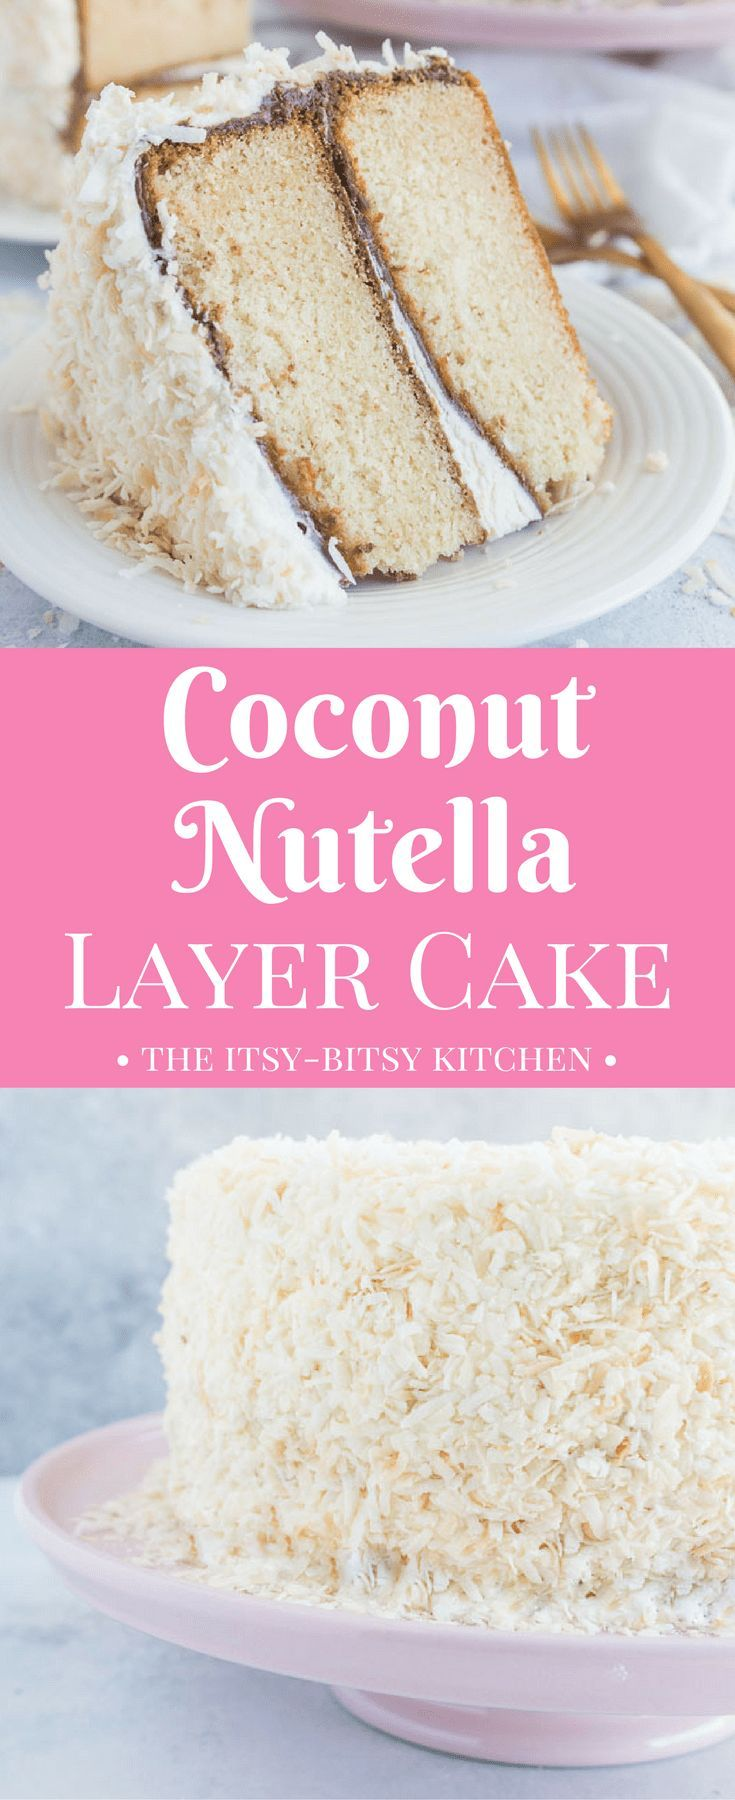 This coconut Nutella layer cake features two layers of moist coconut cake topped with Nutella, coconut buttercream, and toasted coconut. If you love chocolate and coconut then you'll adore this cake! recipe via itsybitsykitchen.com #layercake #Nutella #coconutcake